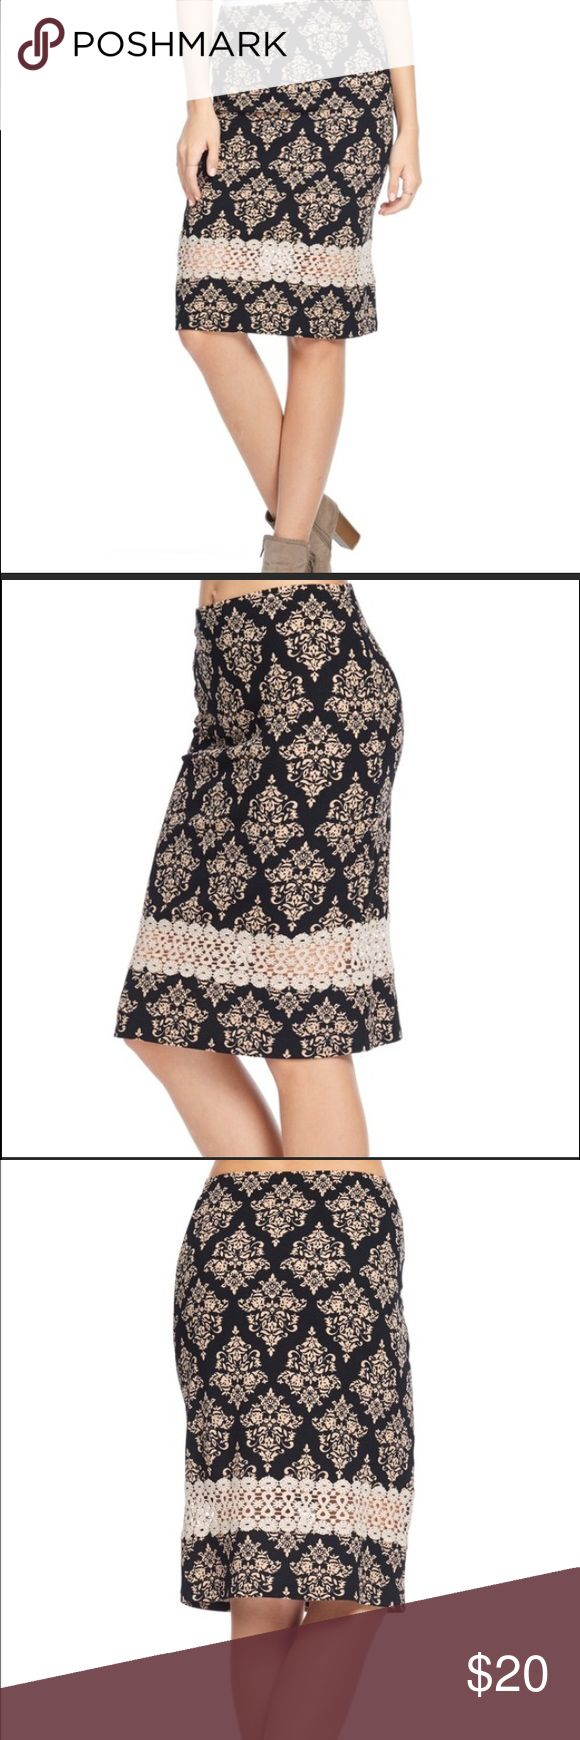 Lace Damask Black and White Pencil Skirt Beautiful skirt that can be dressed up or down. 97% polyester. 3% spandex. Bellino Clothing Skirts Pencil